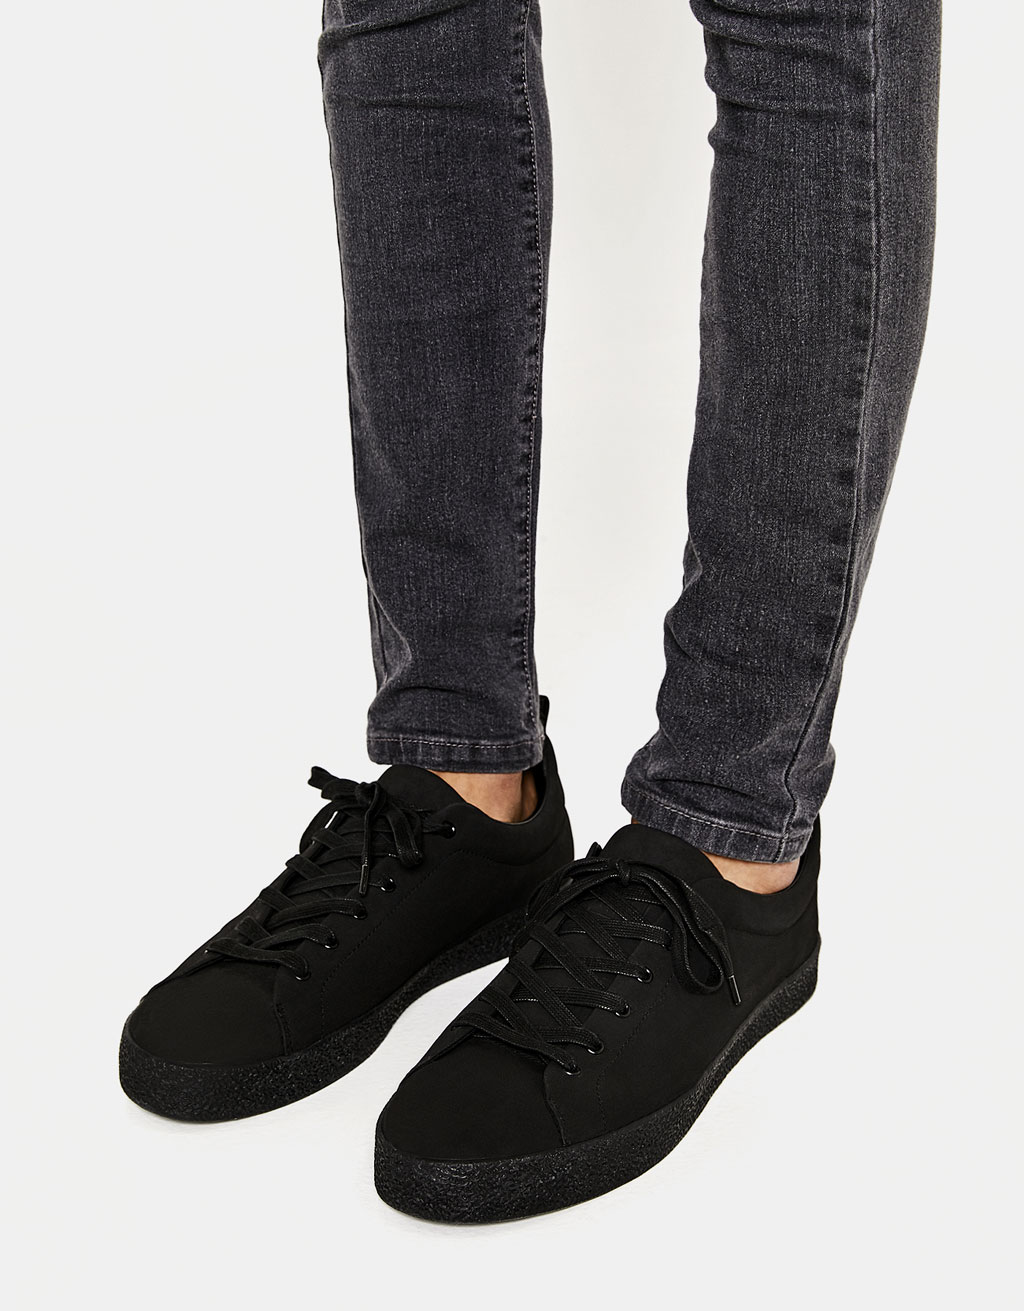 Men's black sneakers with textured soles